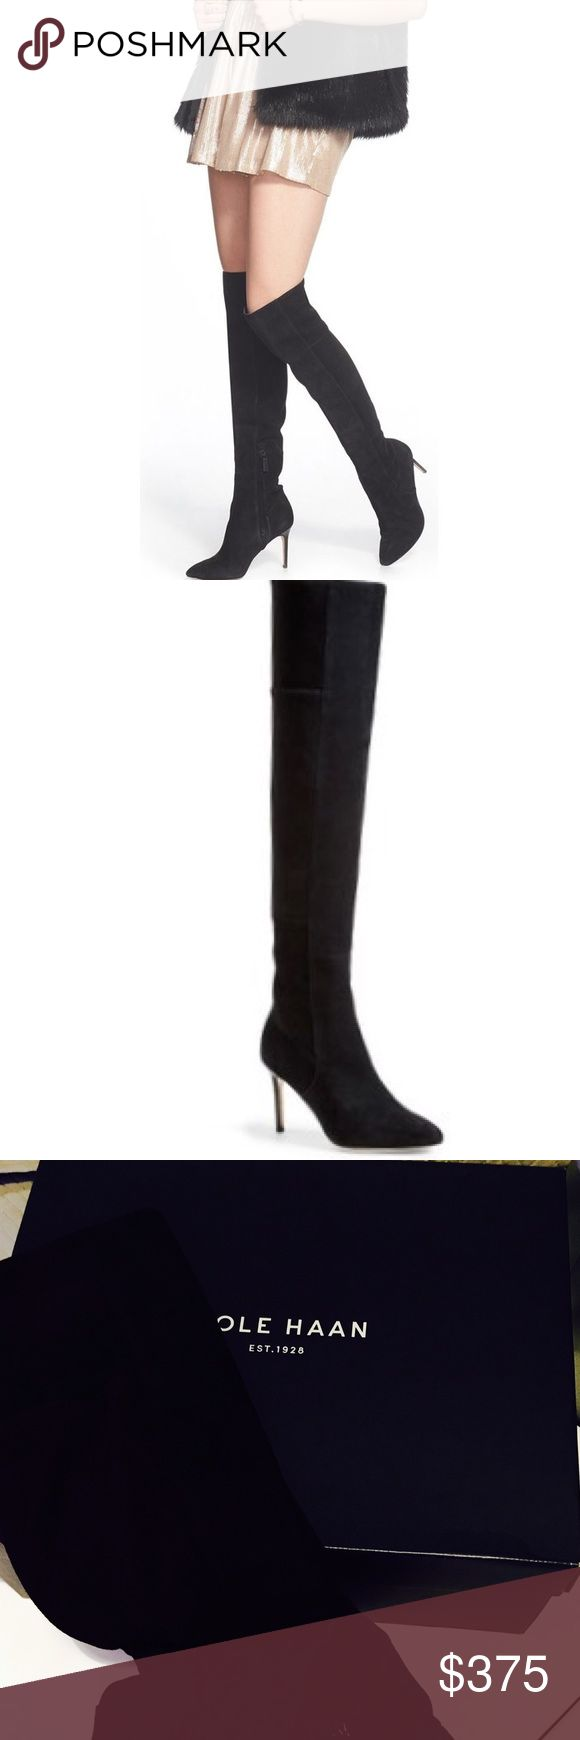 Cole Haan Marina Knee Boot ~ 6.5 Popular! Cole Haan Marina Knee Boot😍 Stores brought back twice due to popular demand. Beautiful Boot Sold out 6.5 (Worn Once) Literally To the car & back Home. 😘 Cole Haan Shoes Over the Knee Boots